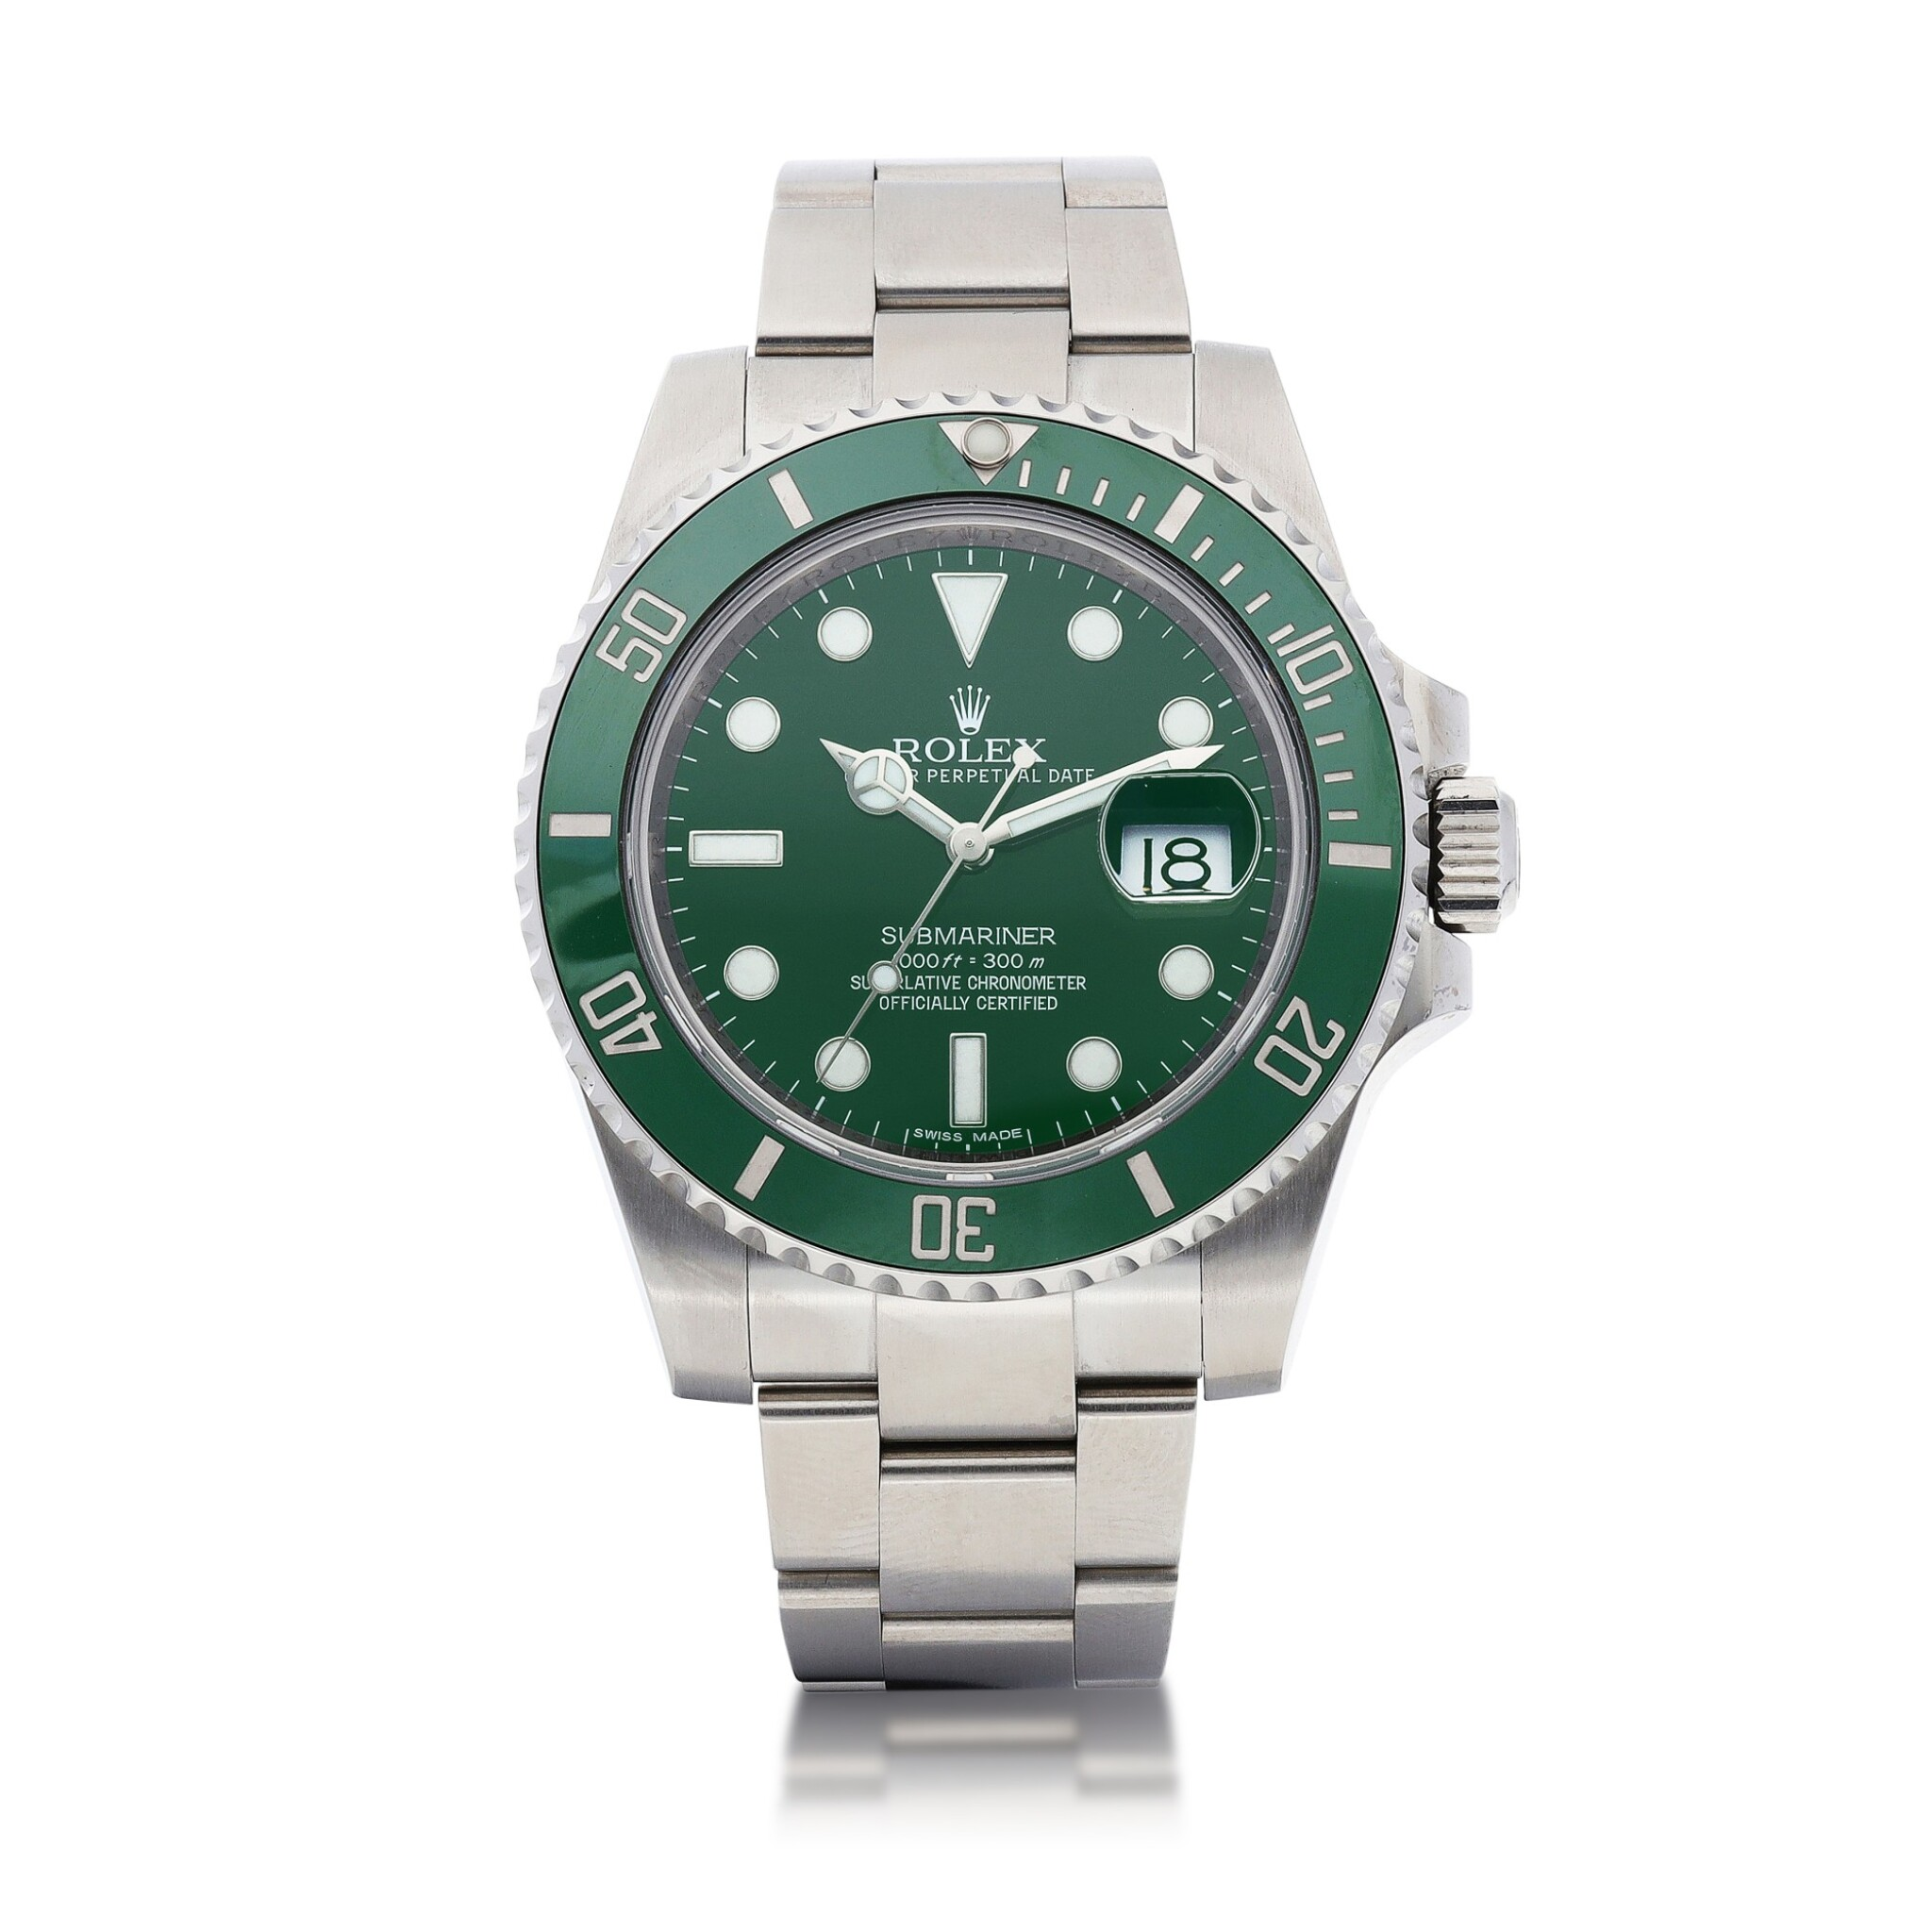 """View 1 of Lot 8027. Rolex   Submariner """"Hulk"""", Reference 116610LV, A stainless steel wristwatch with date and Bracelet, Circa 2013   勞力士   Submariner """"Hulk"""" 型號116610LV   精鋼鏈帶腕錶,備日期顯示,約2013年製."""